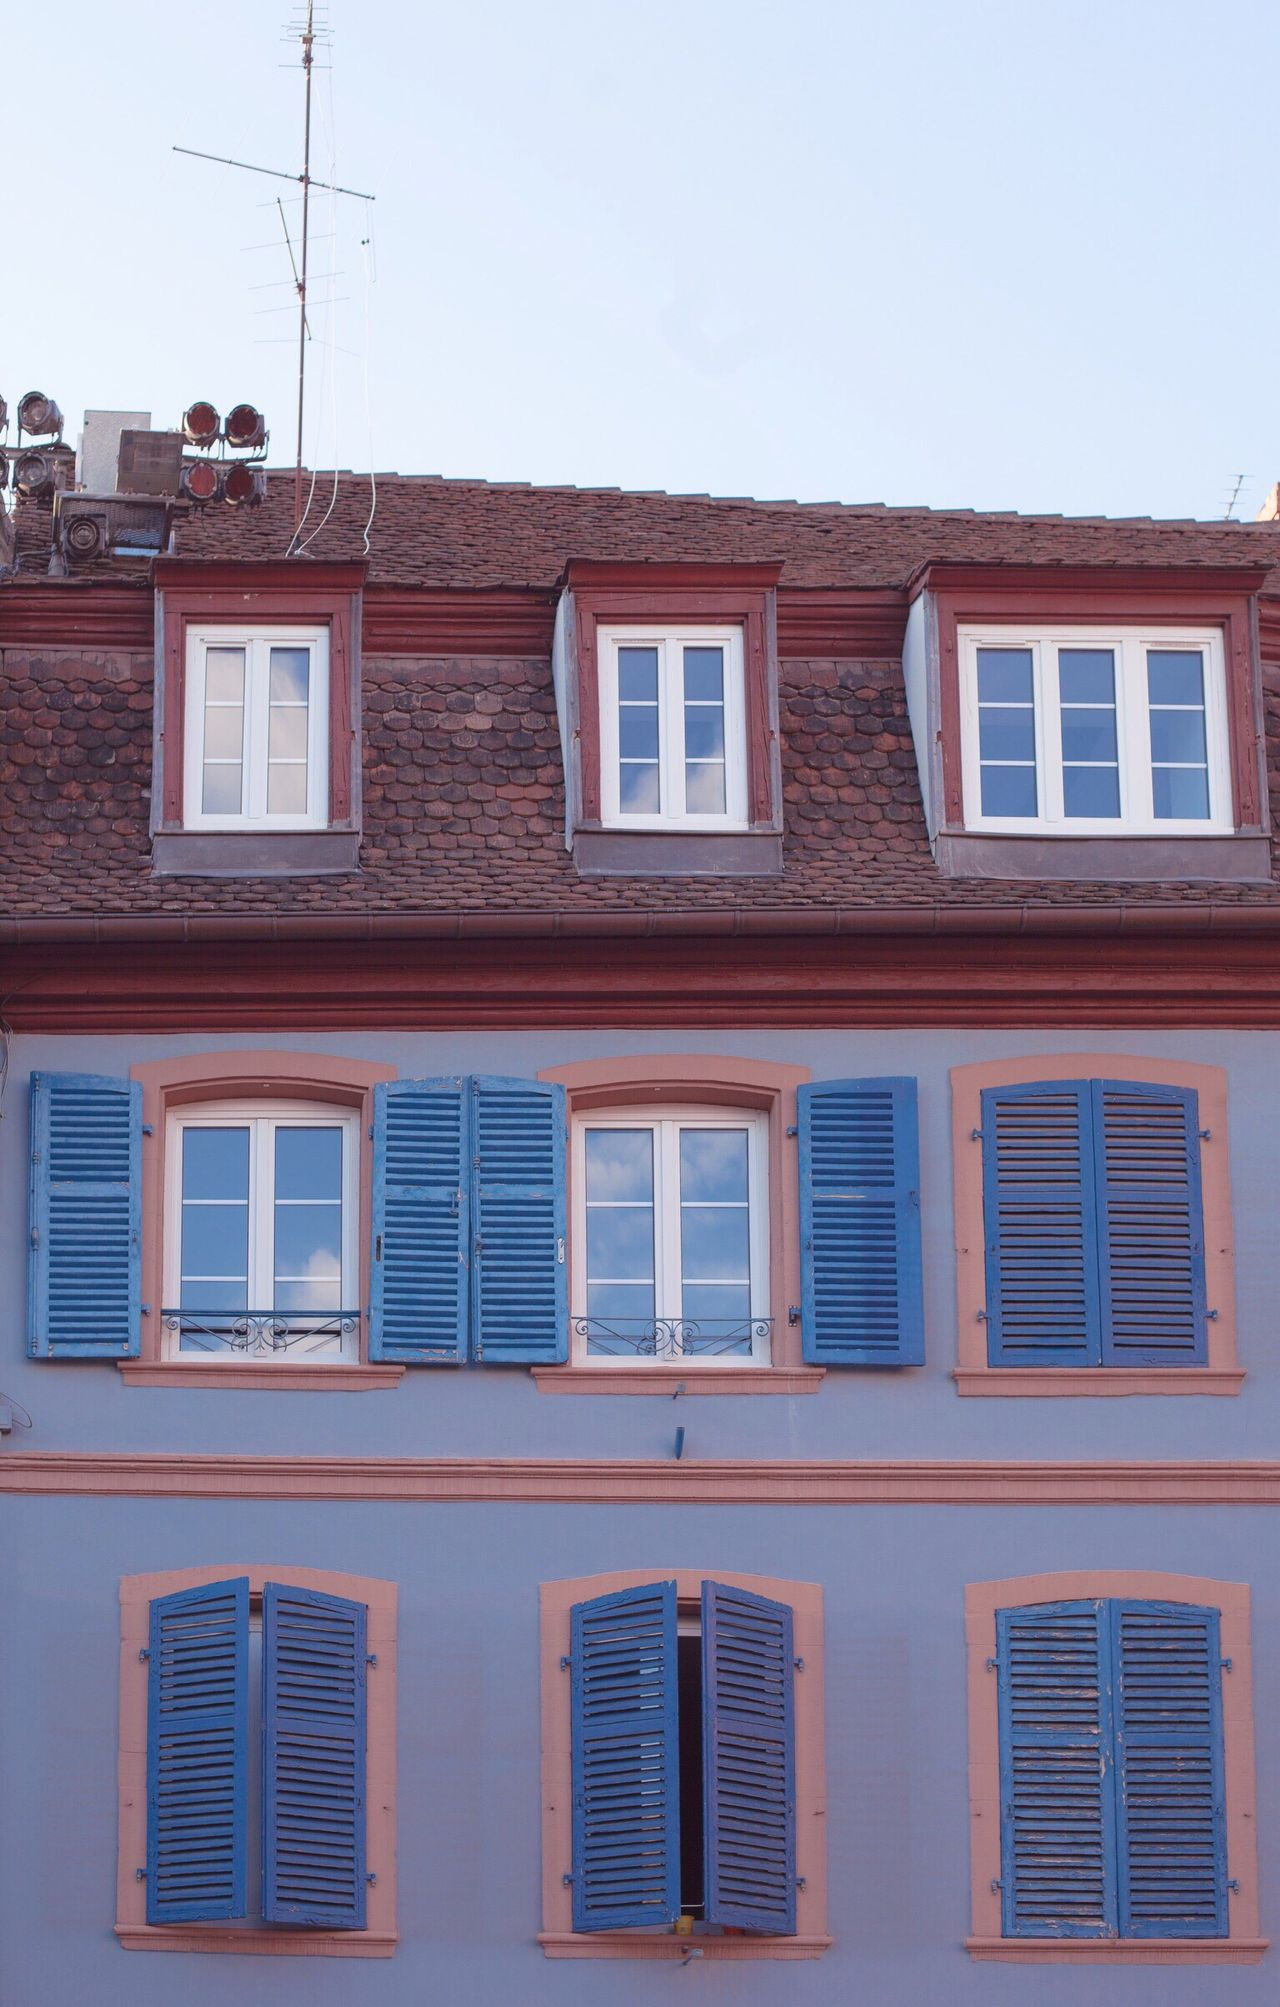 Rooftop Building Exterior Window Architecture Built Structure No People Outdoors Day